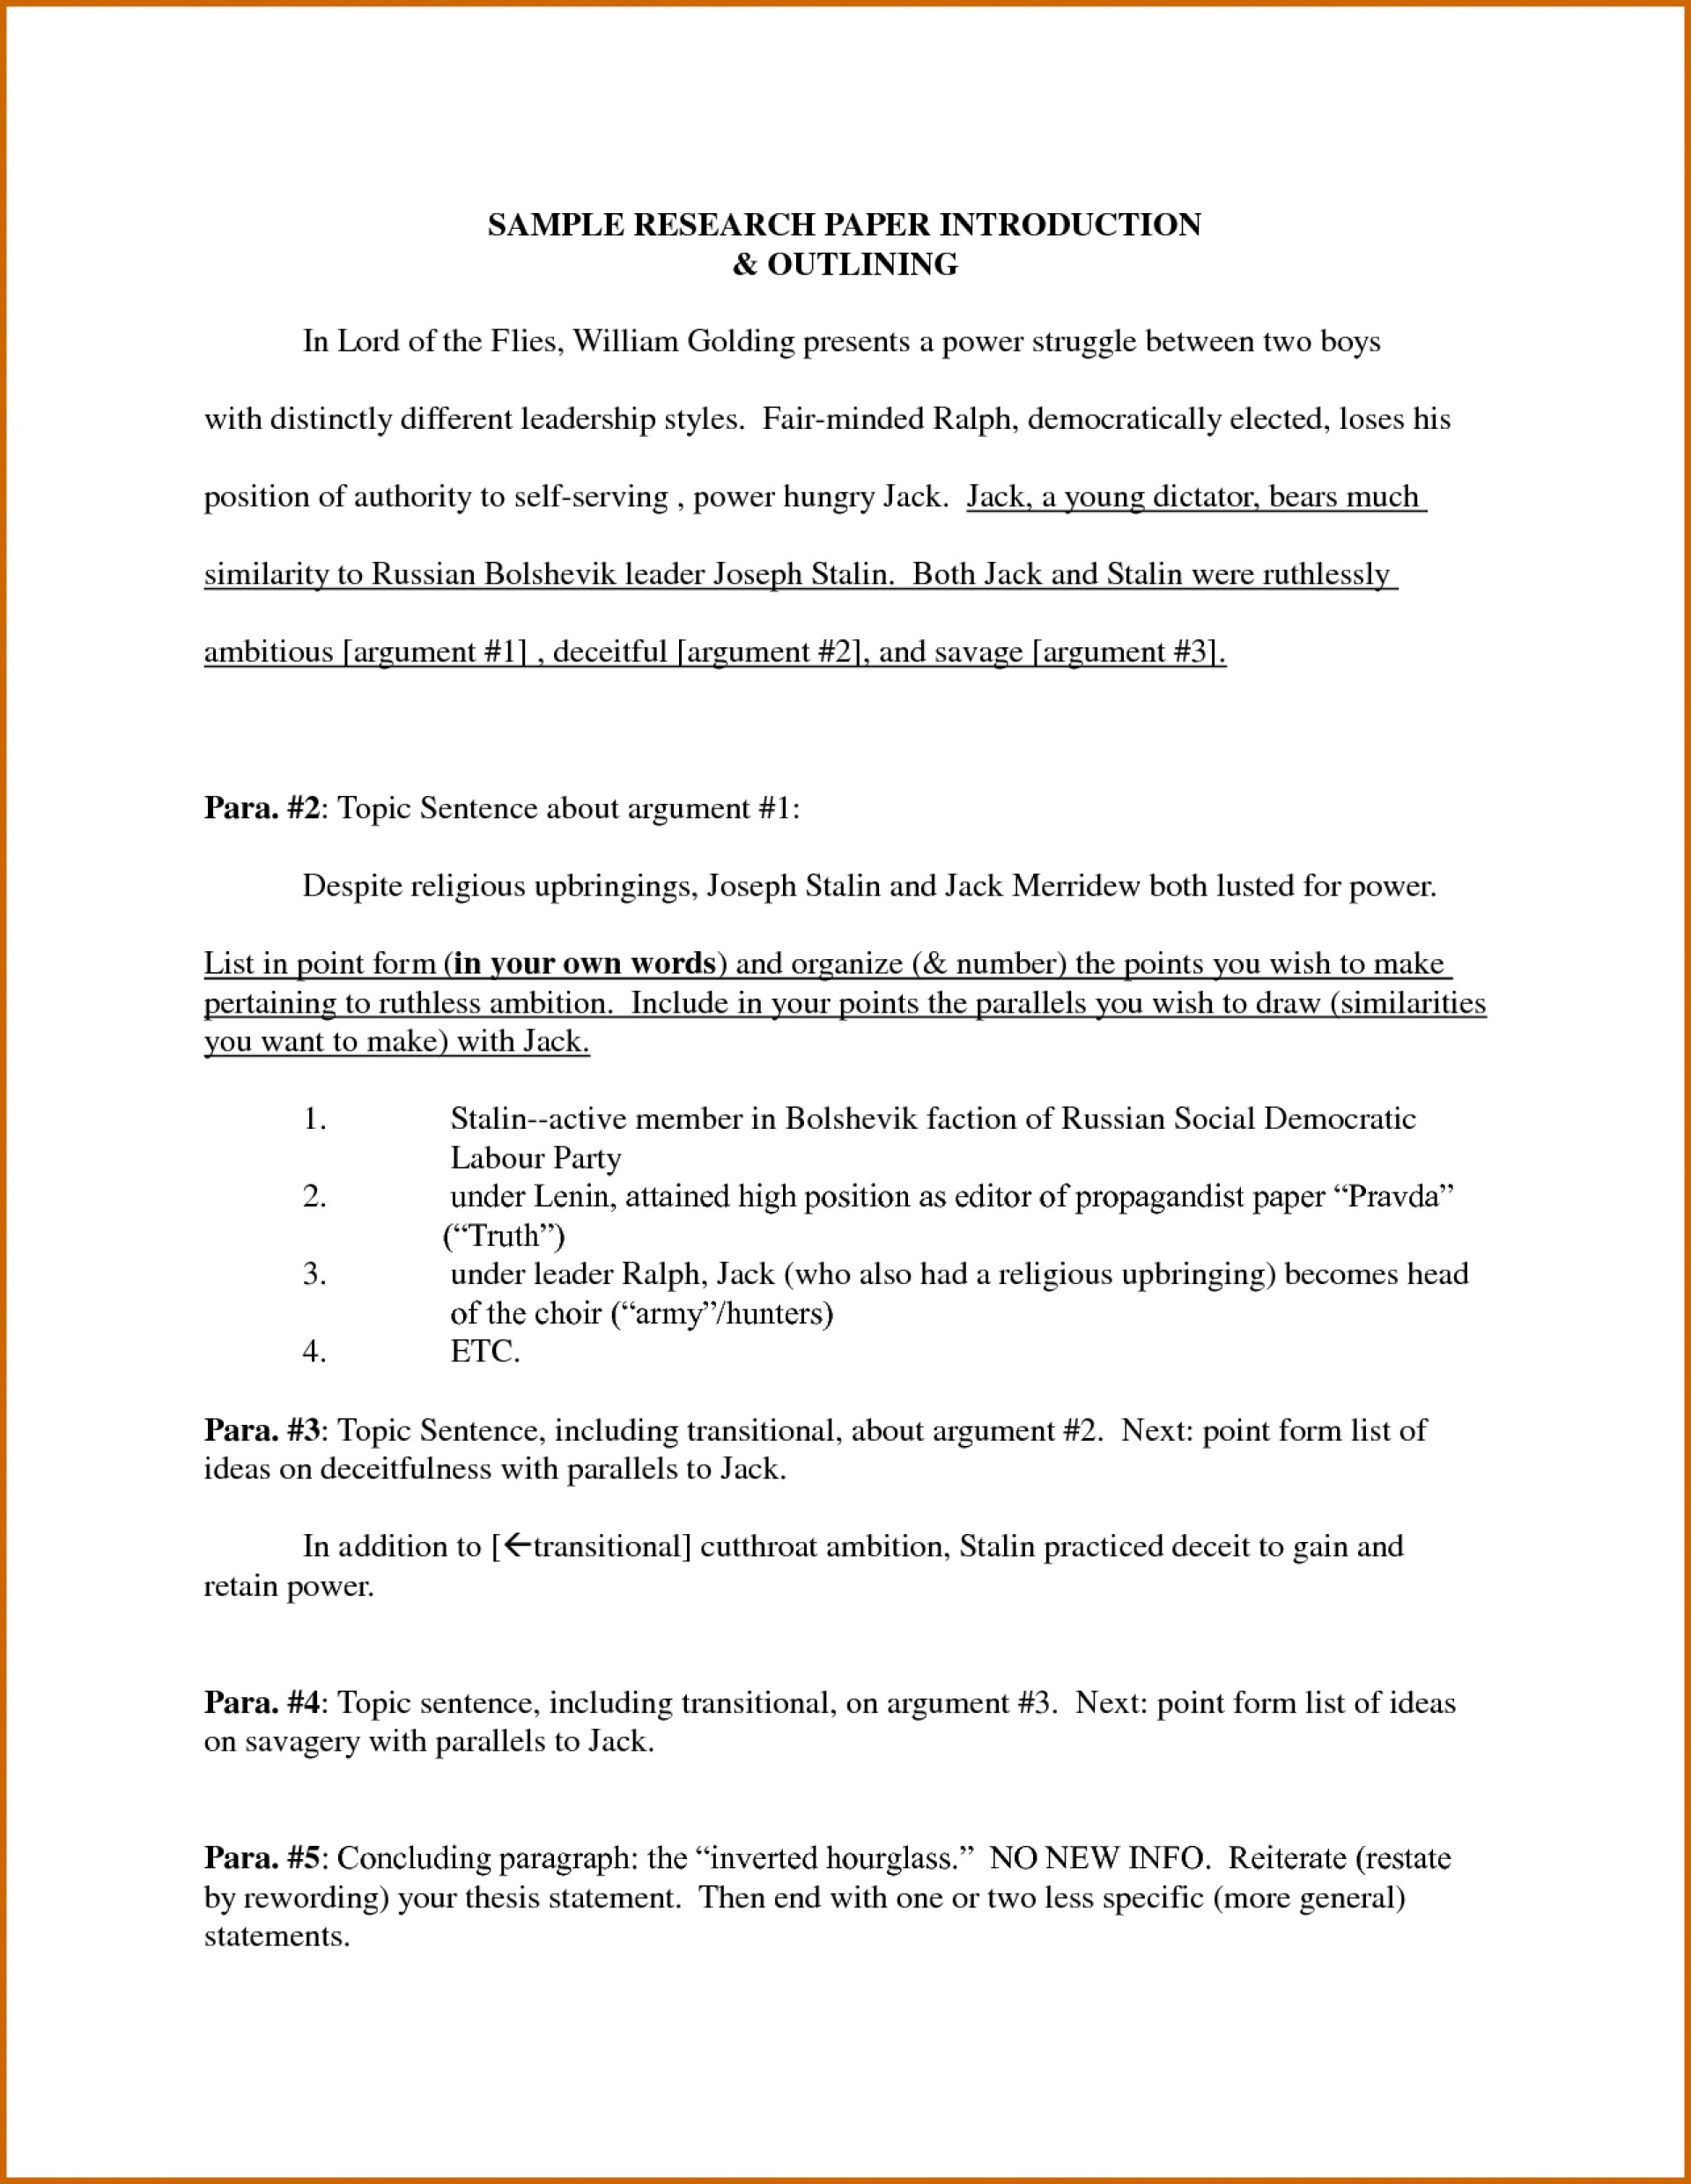 009 Introduction For Term Paper Sample How Do You Write Good Amazing A Research Paragraph 1920